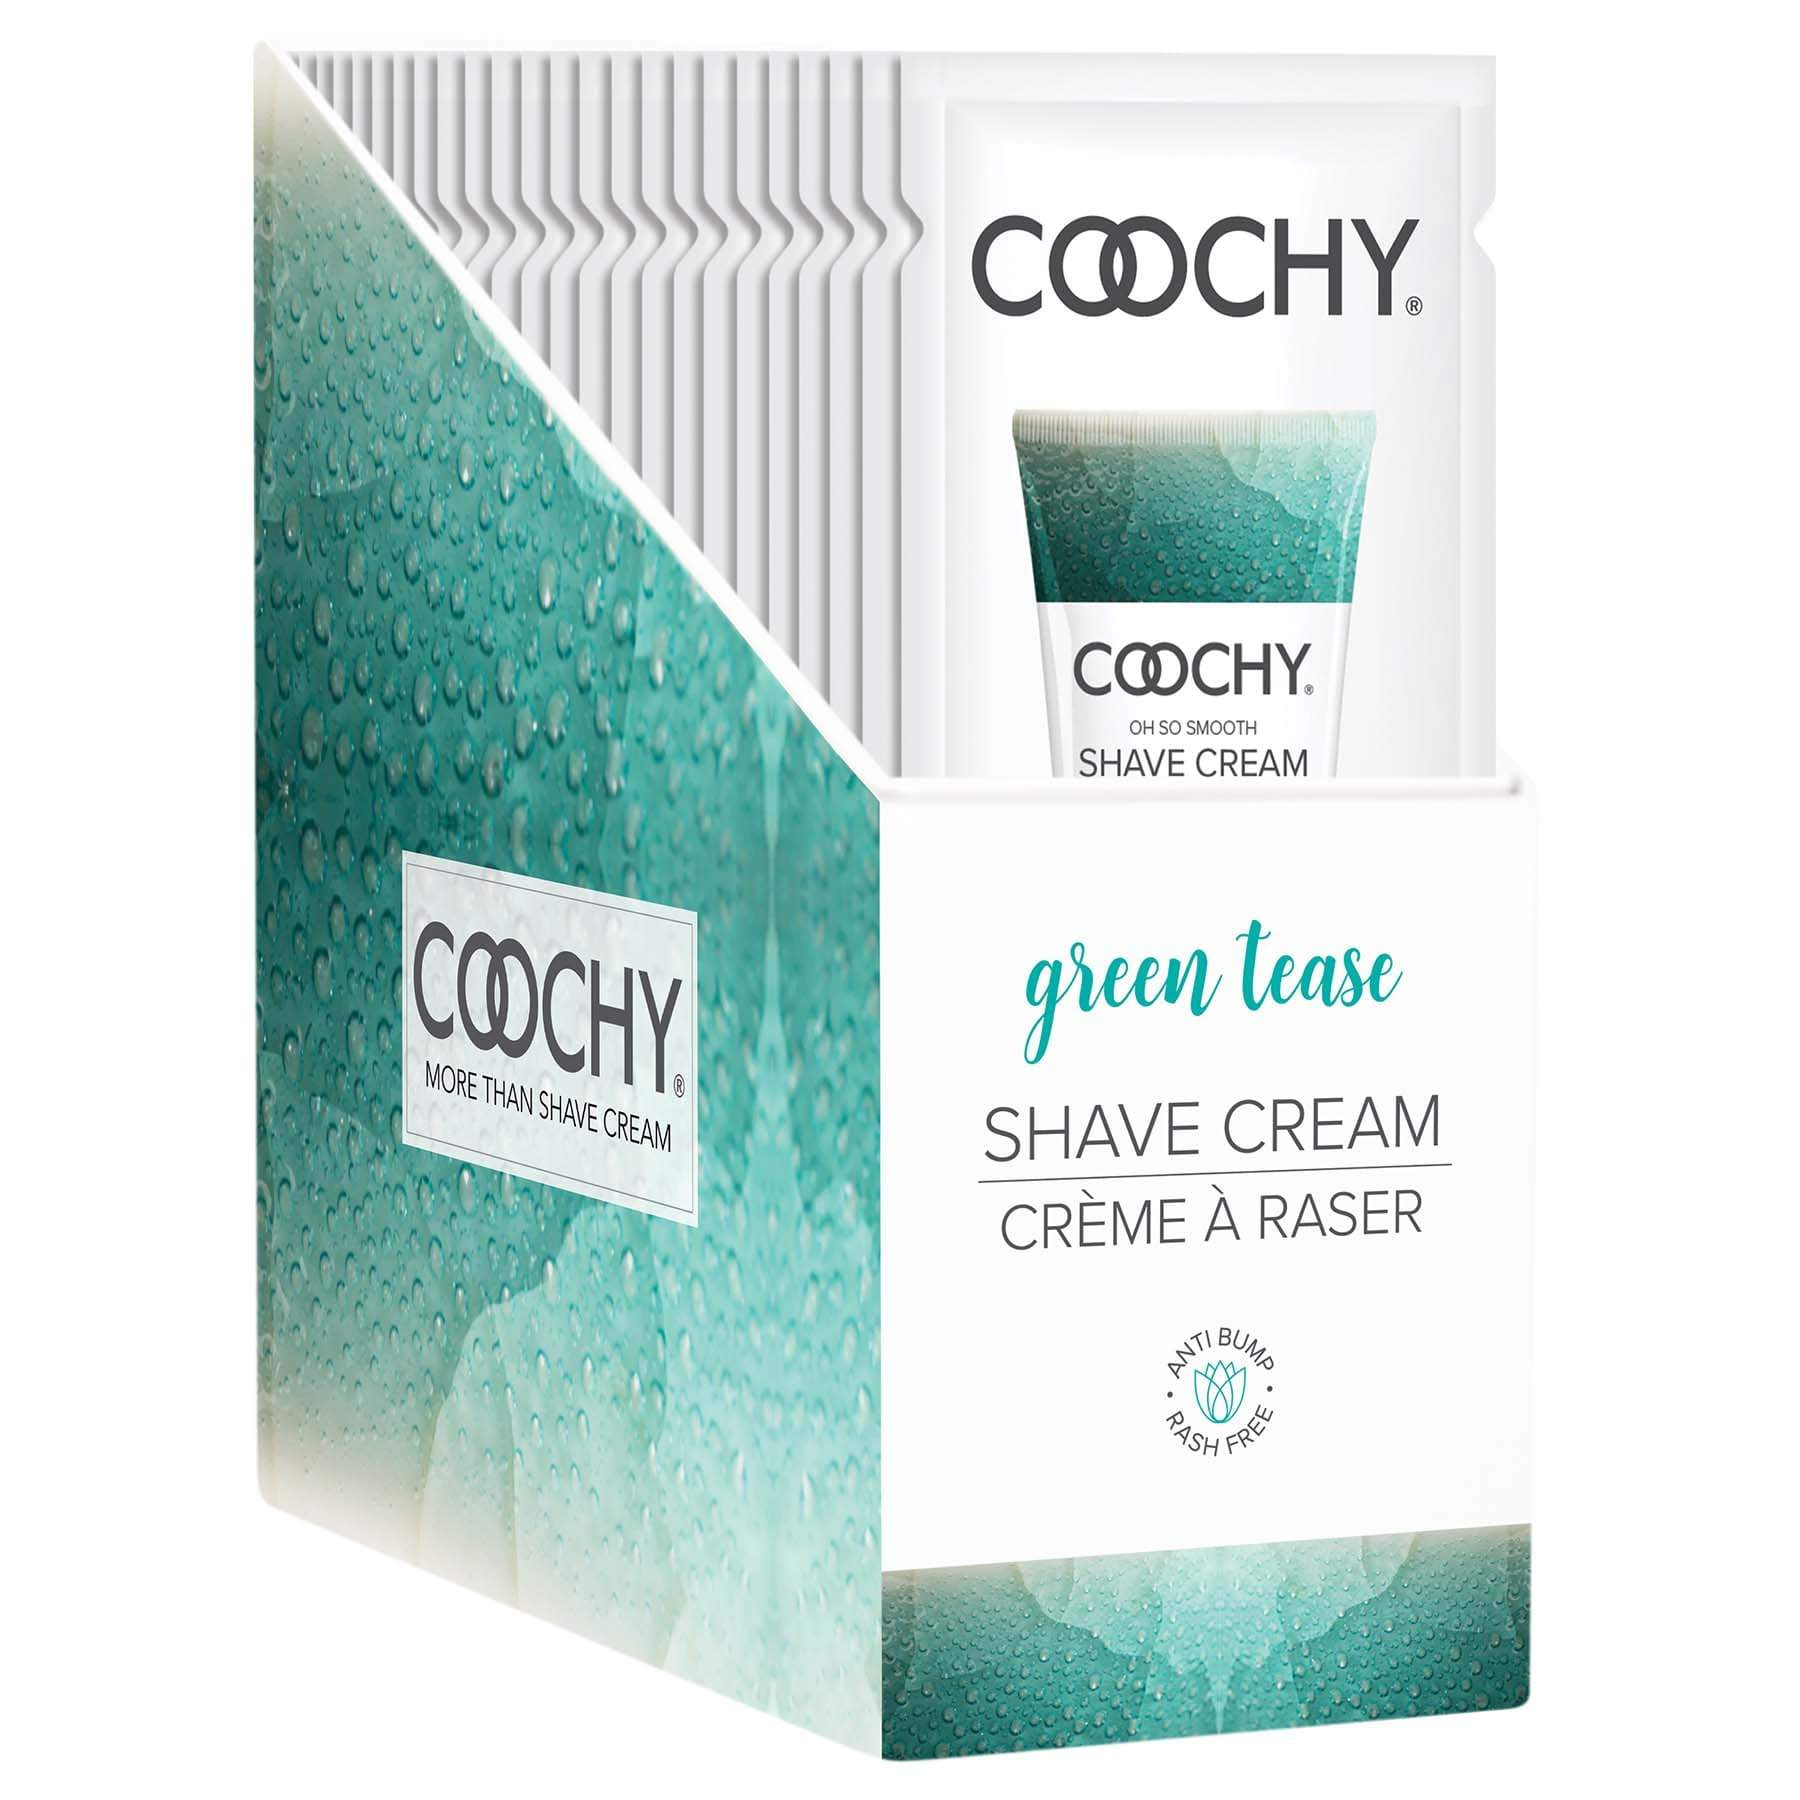 coochy shave cream green tease 15 ml foils 24 count display